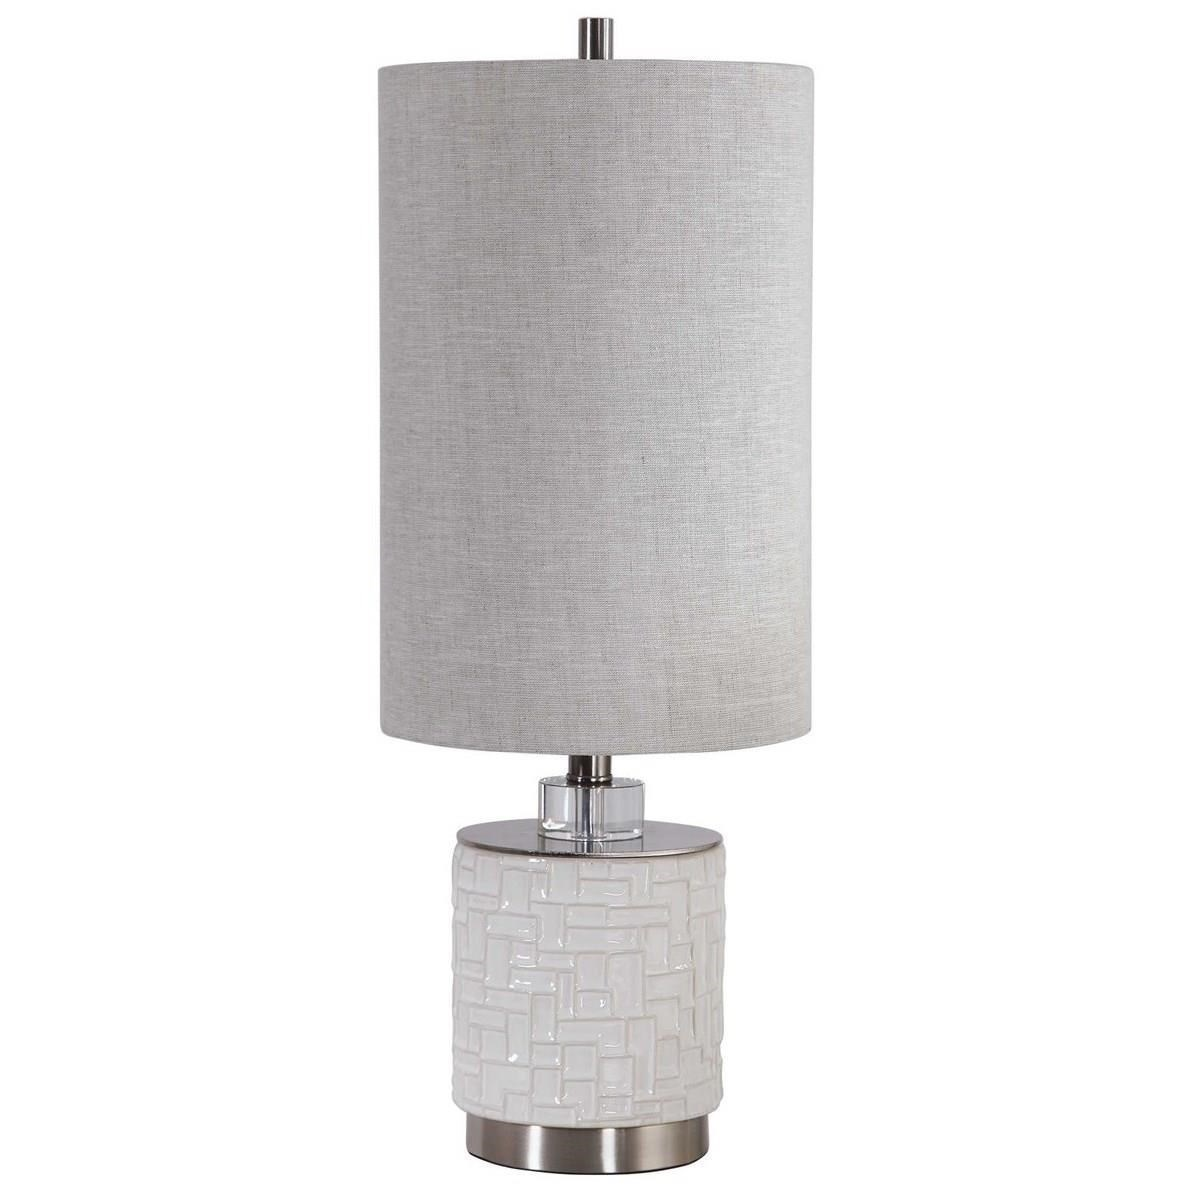 Accent Lamps Elyn Glossy White Accent Lamp by Uttermost at Sprintz Furniture